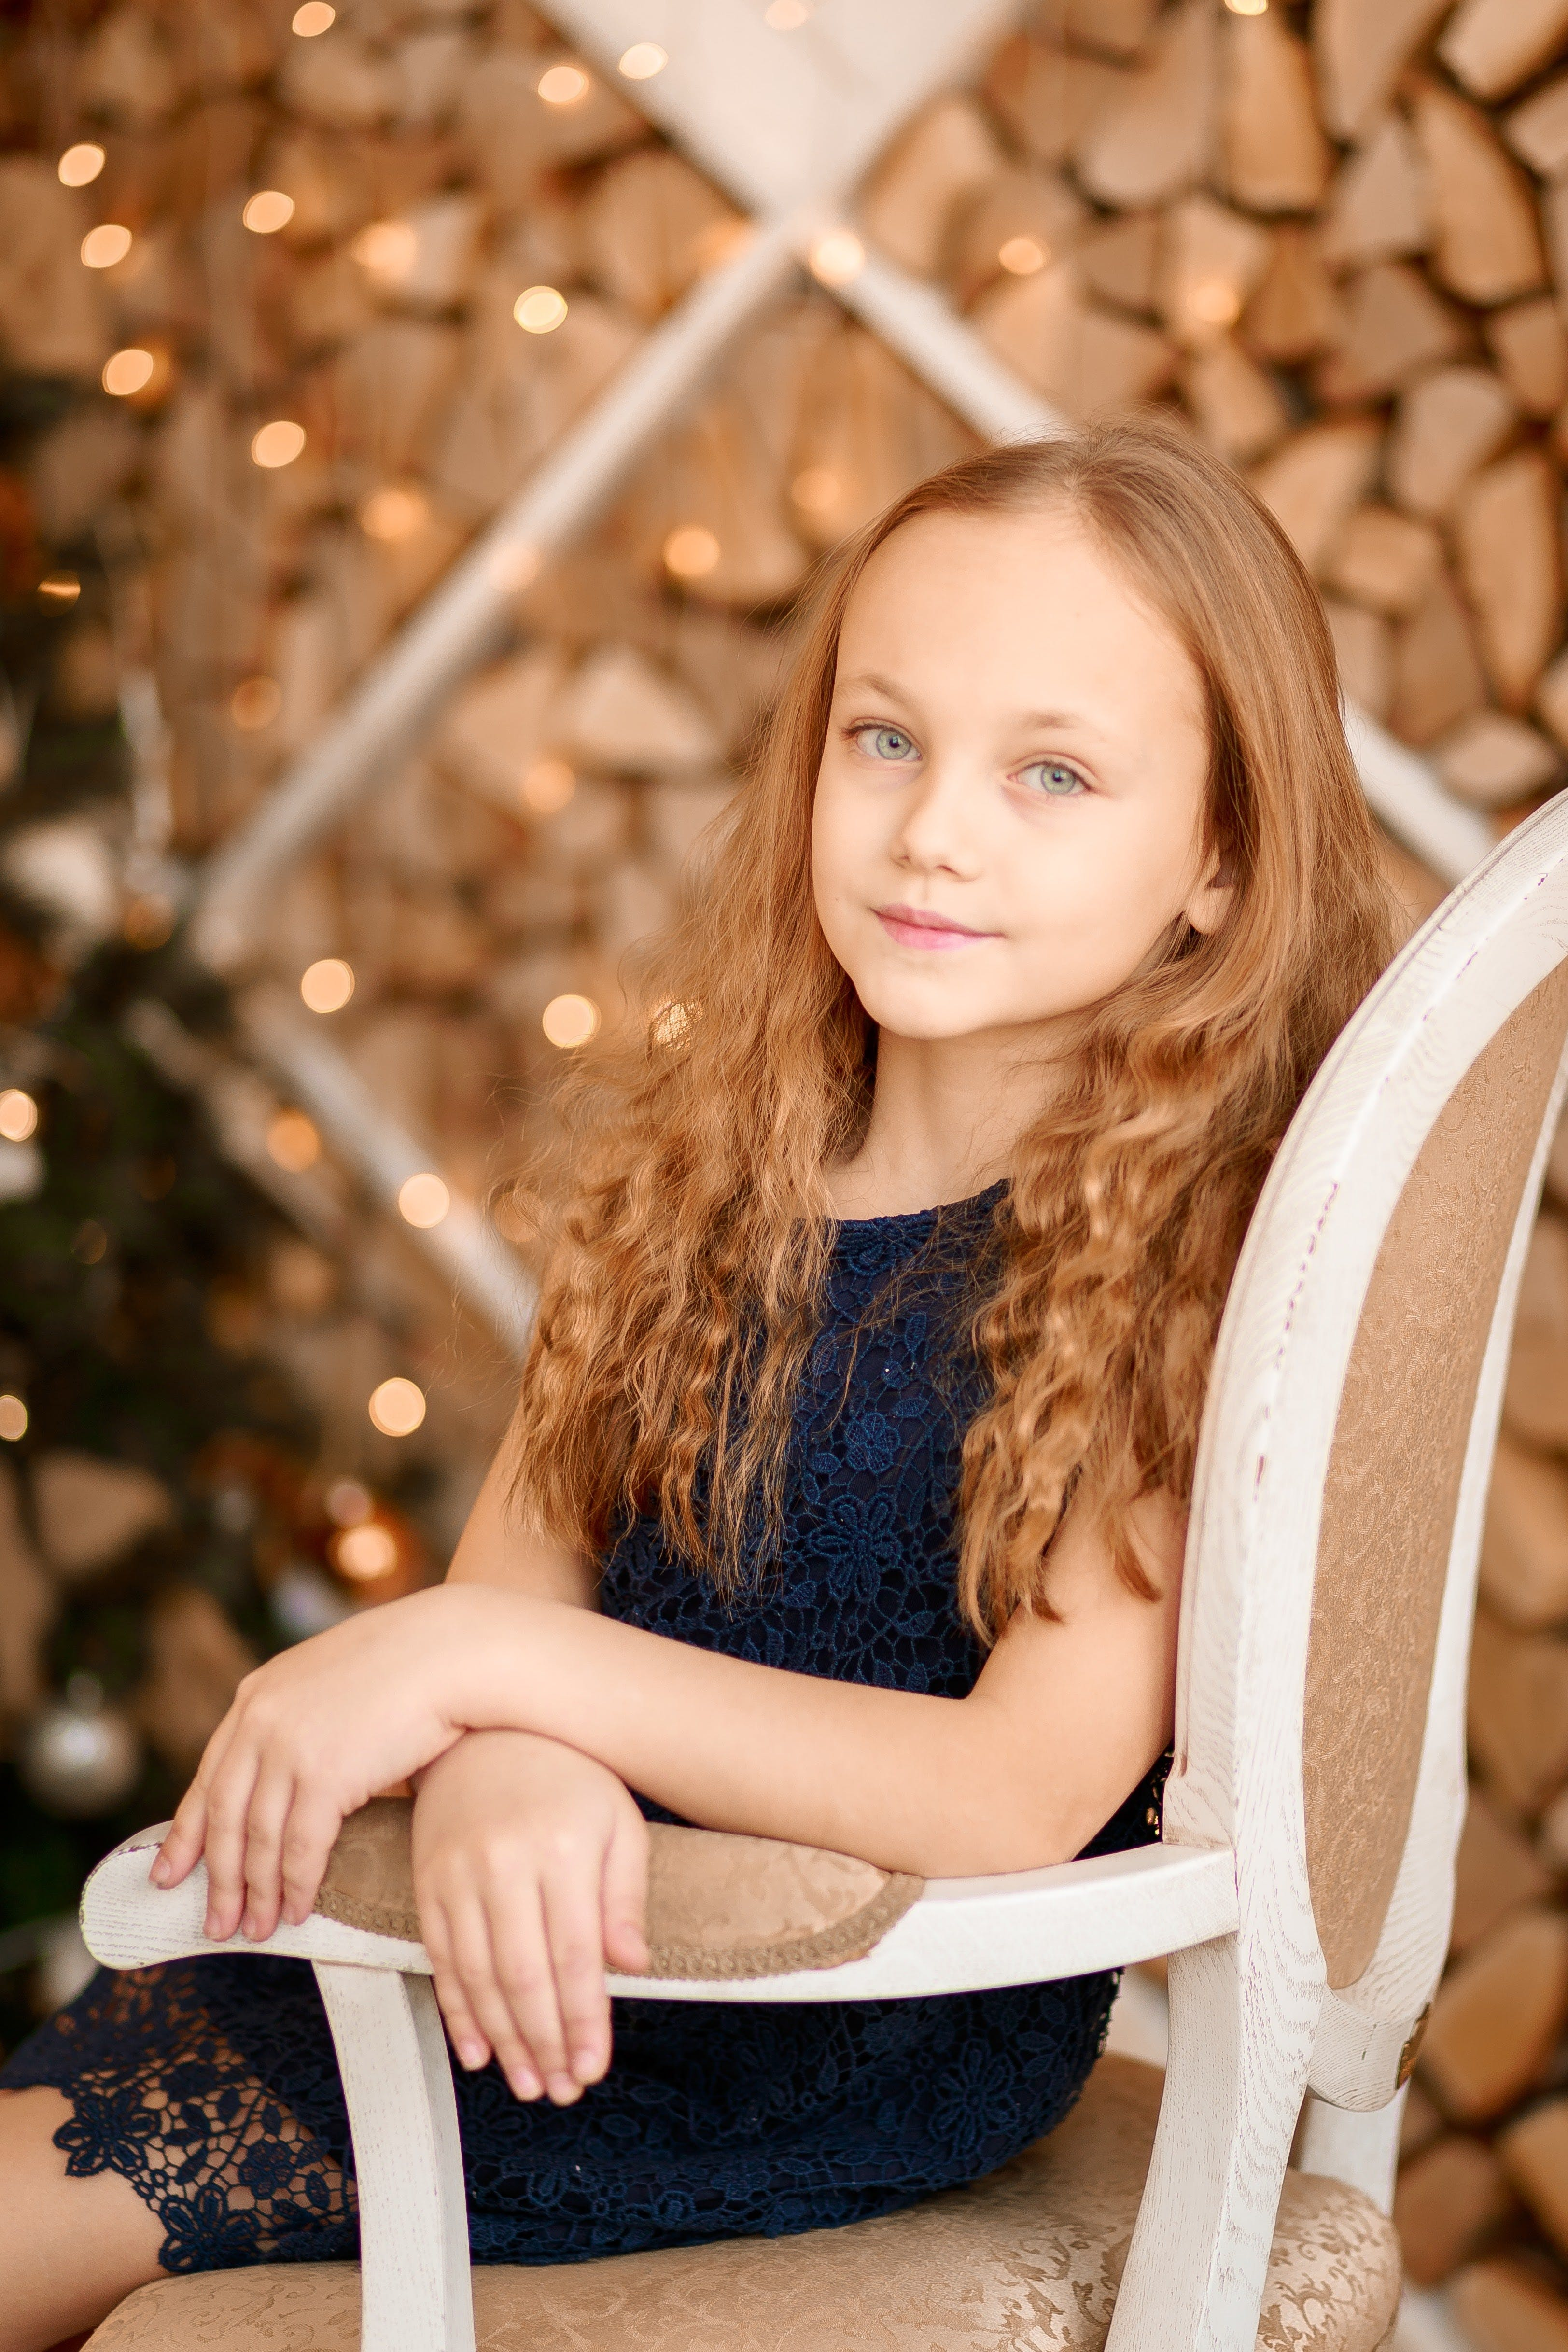 Girl Sitting on White and Brown Chair